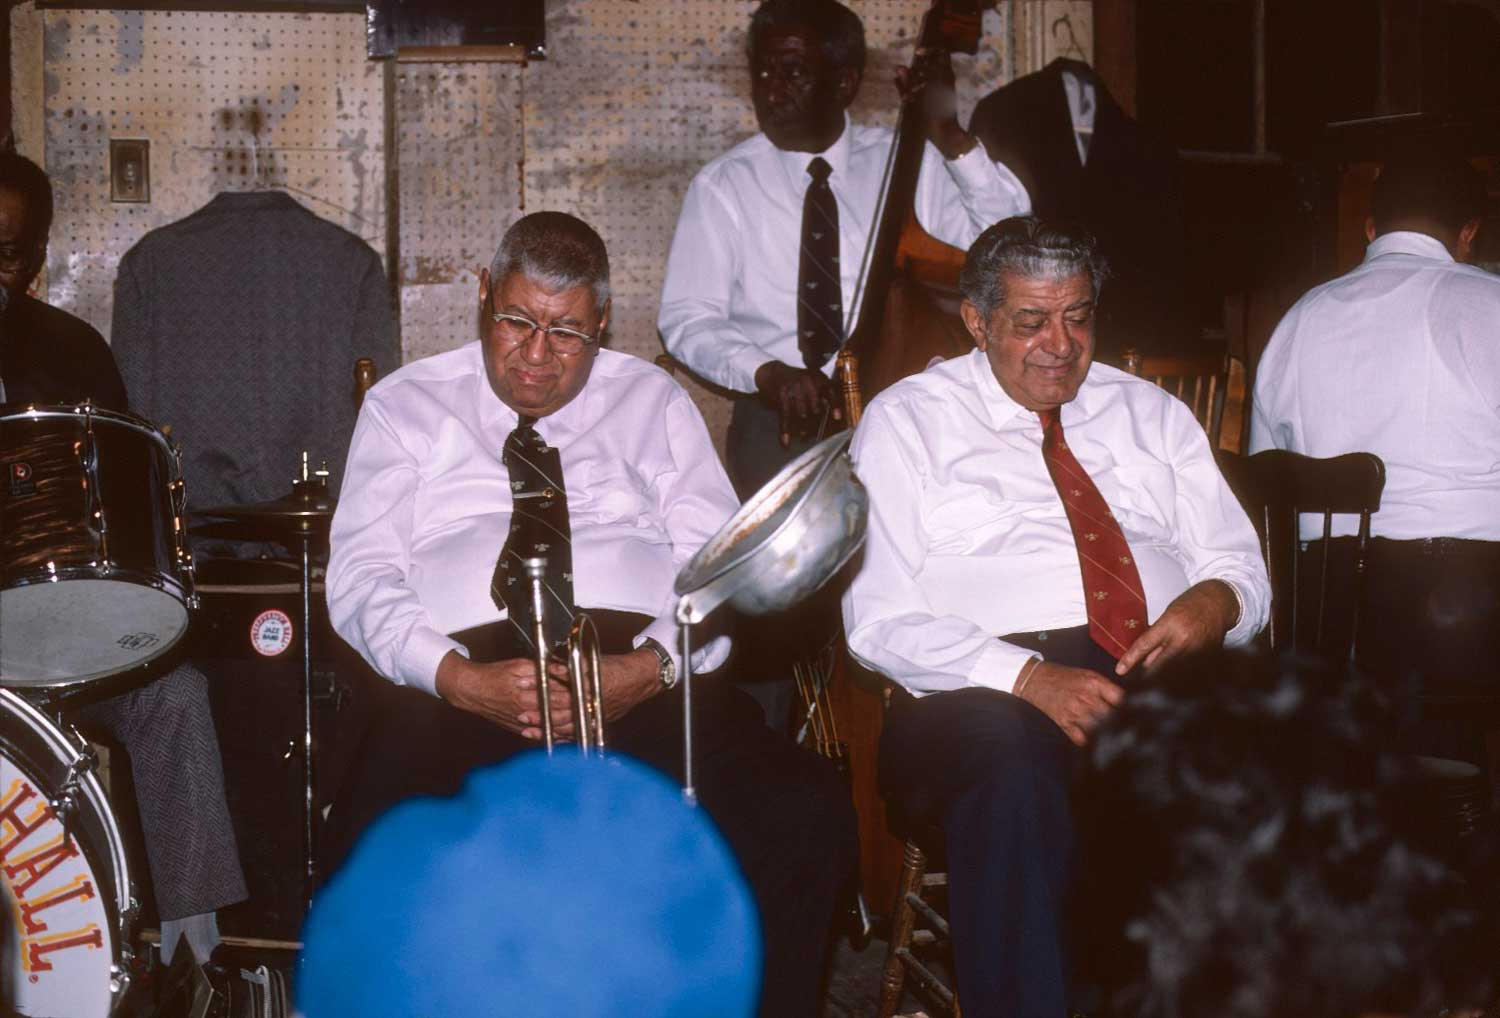 Preservation Hall, New Orleans, c. 1985